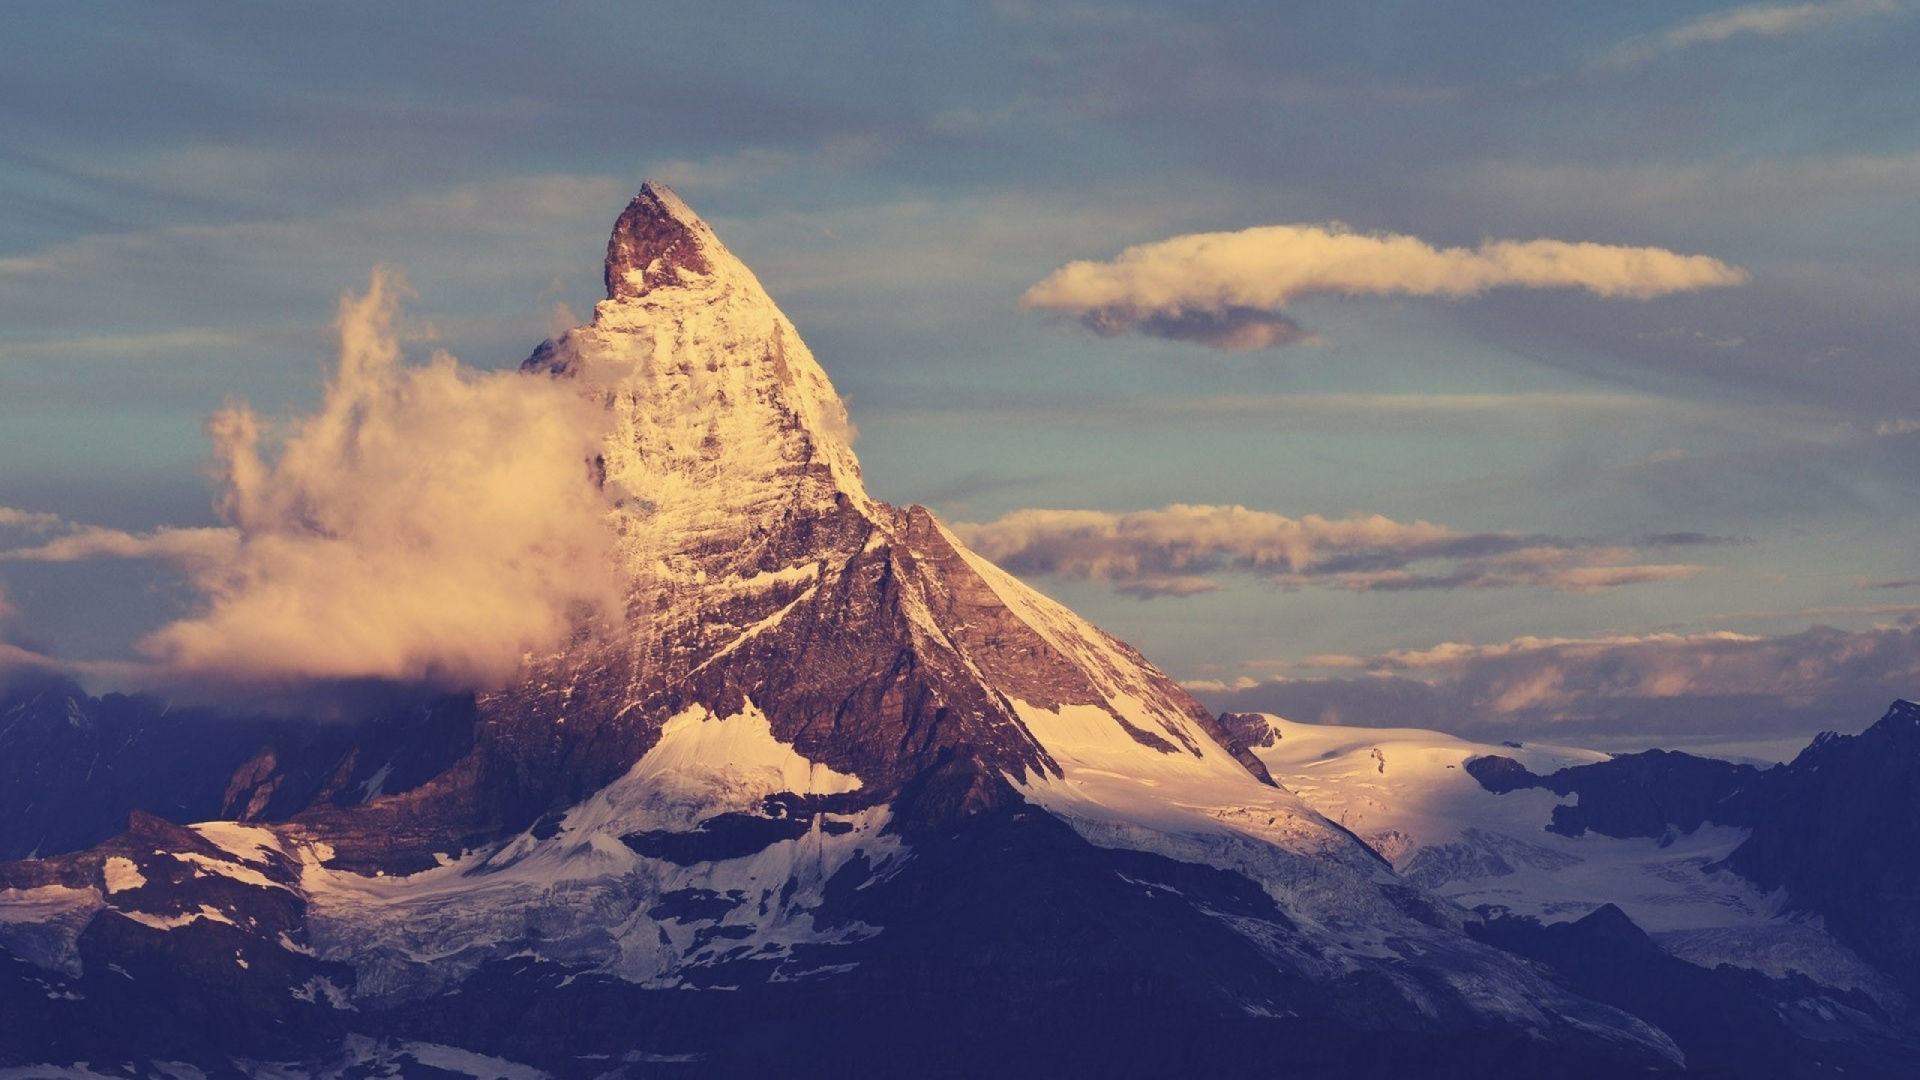 Top Wallpaper Mac Mountain - matterhorn-mountain-peak_wallpapers_35862_1920x1080  HD_274156.jpg